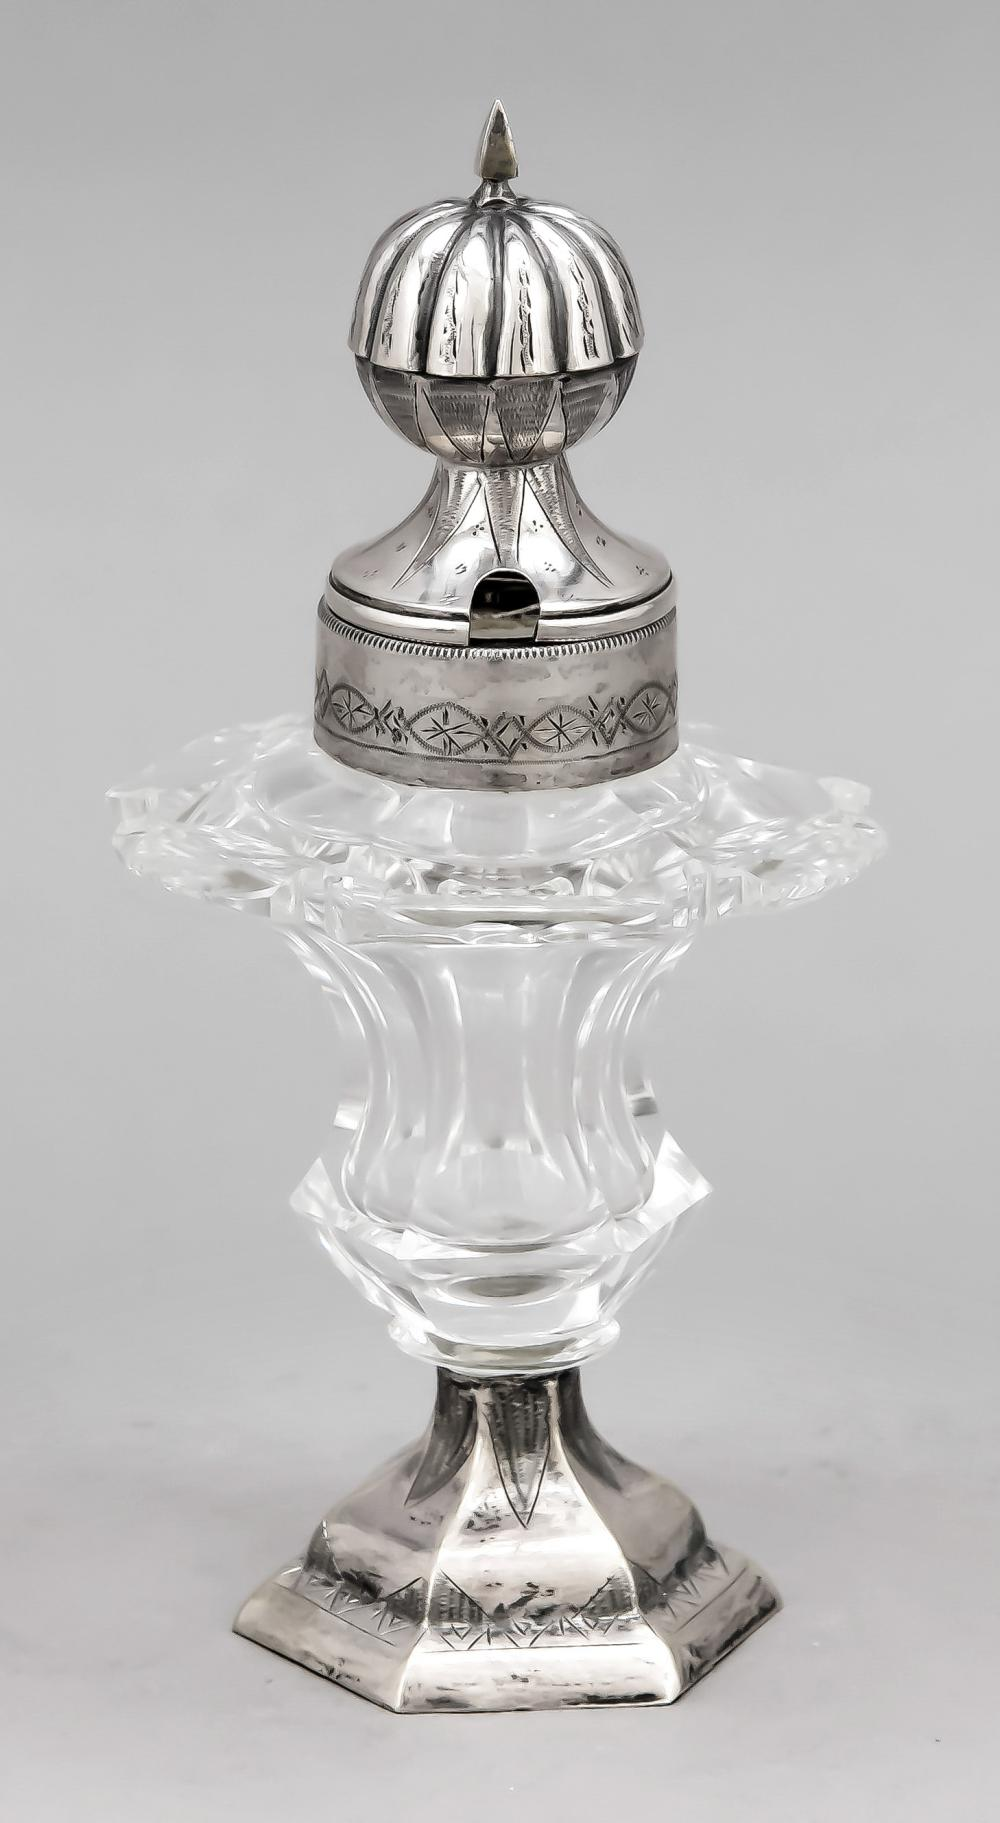 Lidded vessel with silver mou